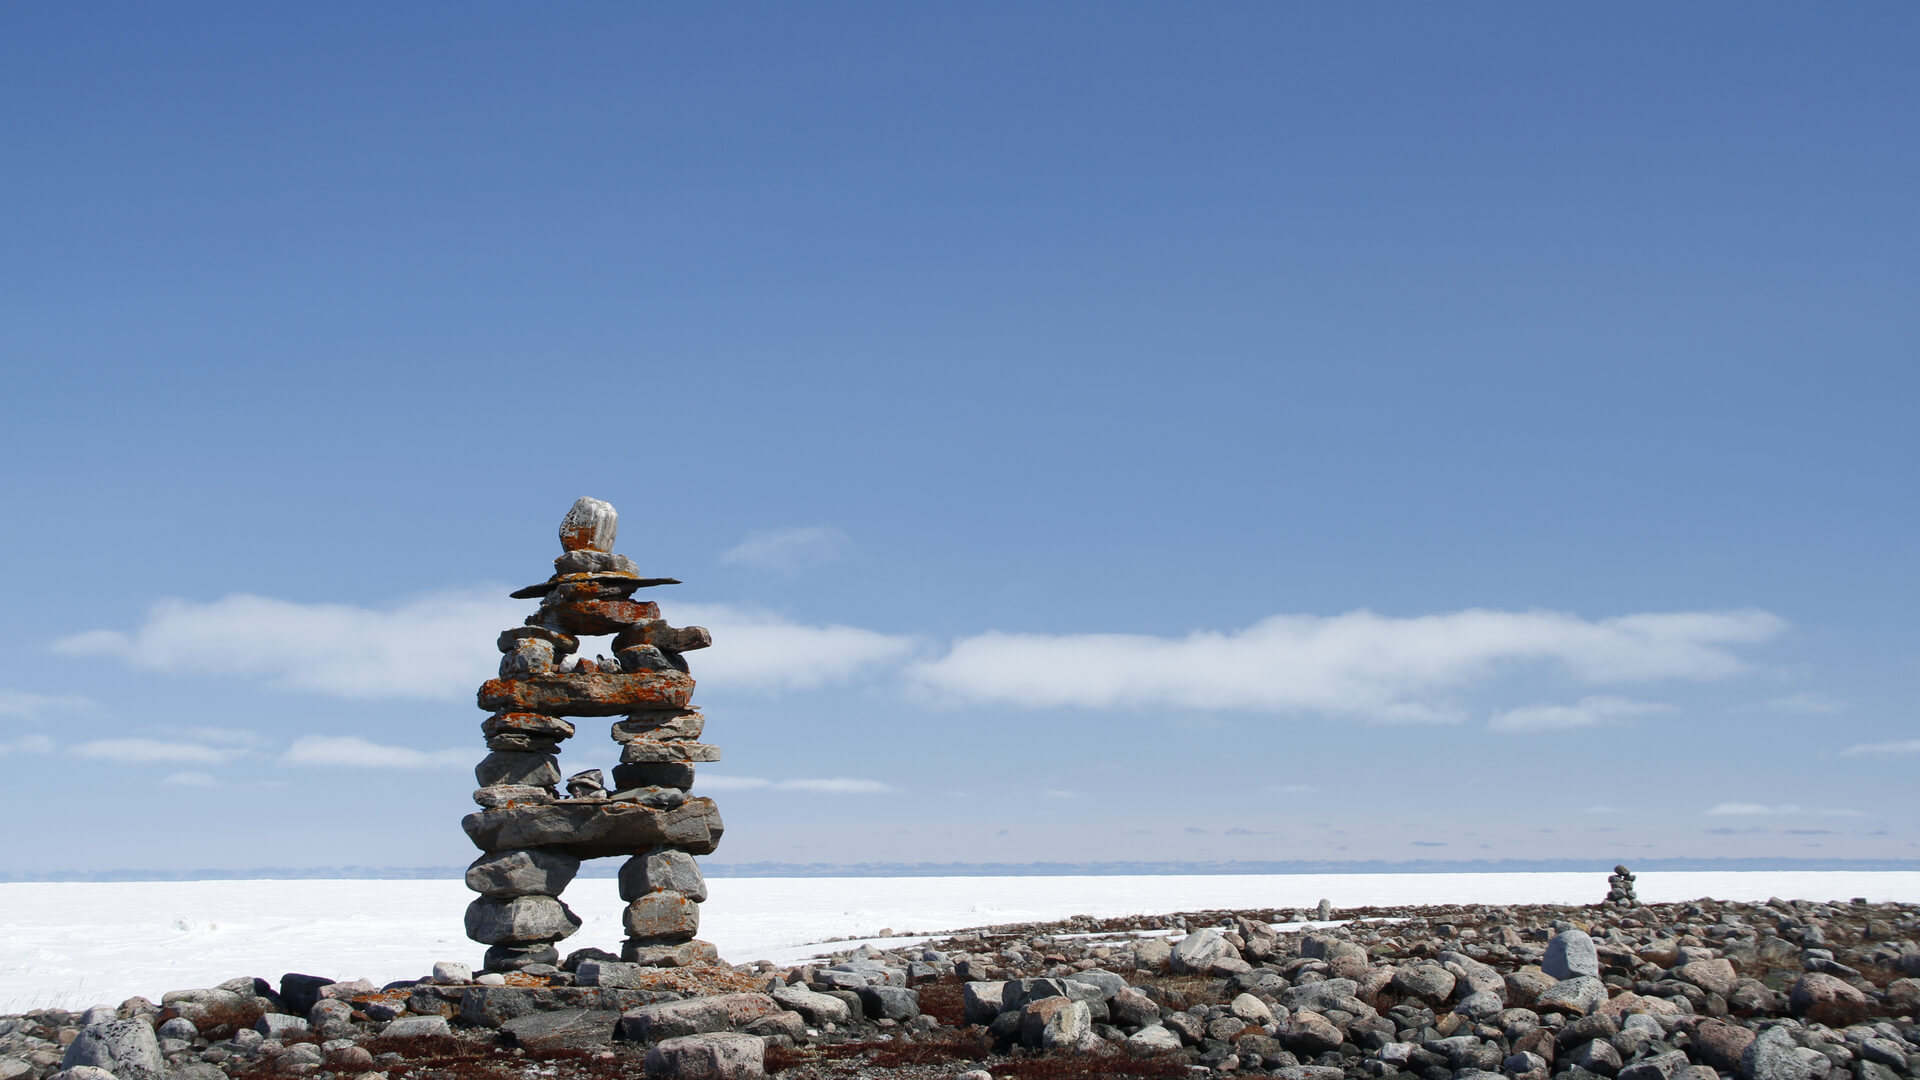 Inukshuk with frozen bay in background in Nunavut